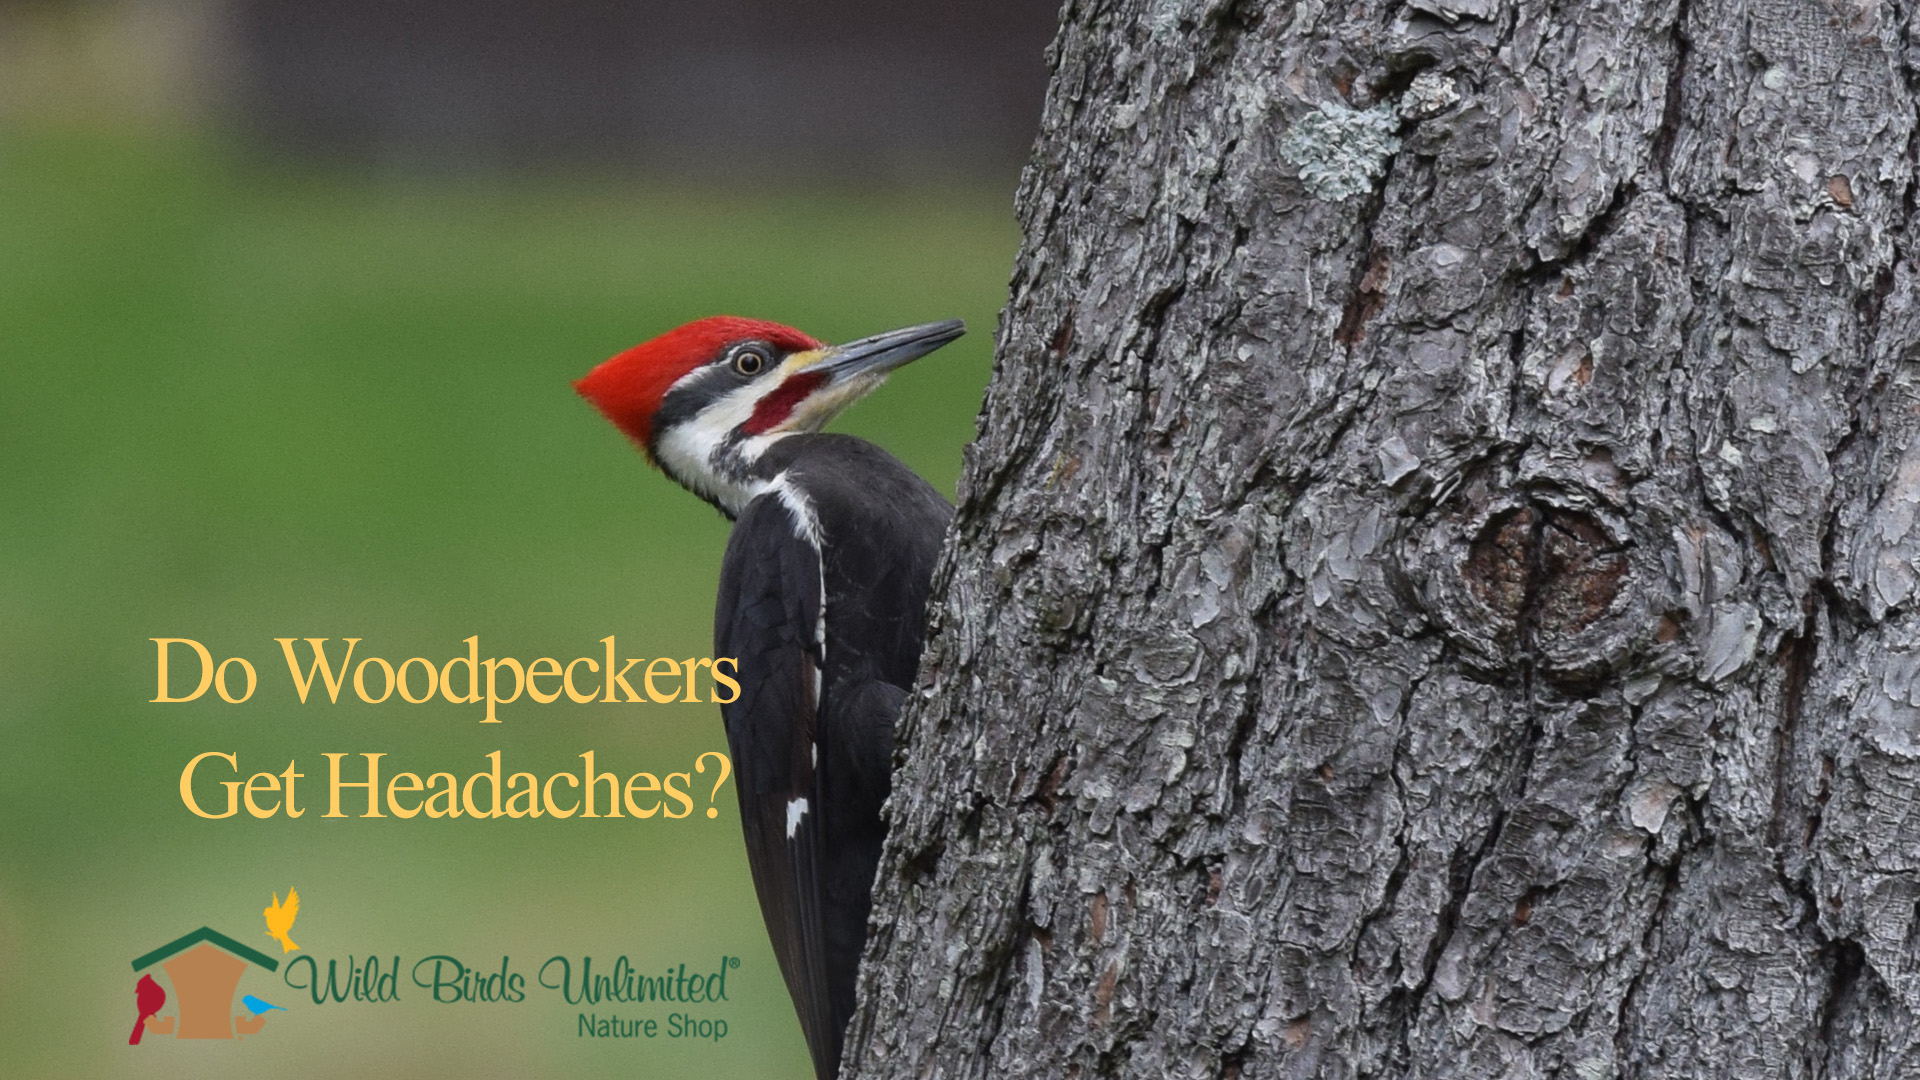 Do Woodpeckers Get Headaches?